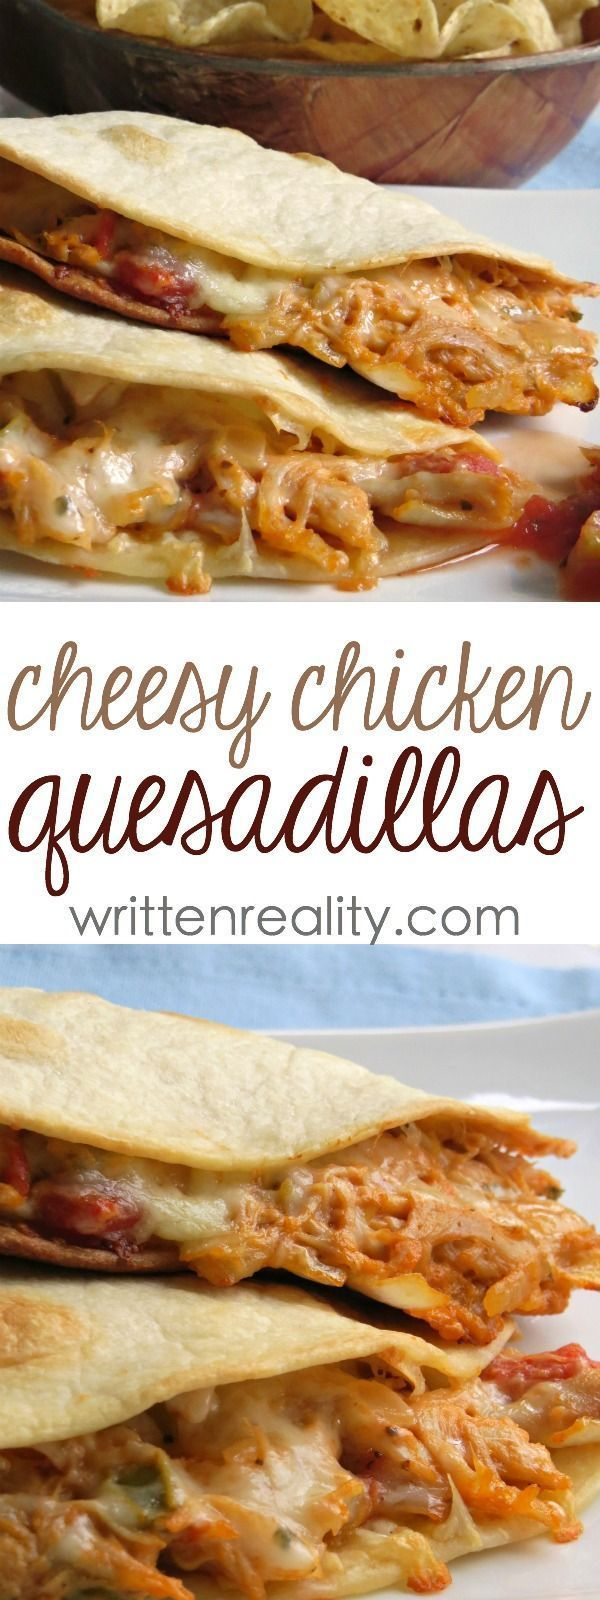 These Cheesy Chicken Quesadillas are out of this world delicious! - Written Reality #quickdinnerideas